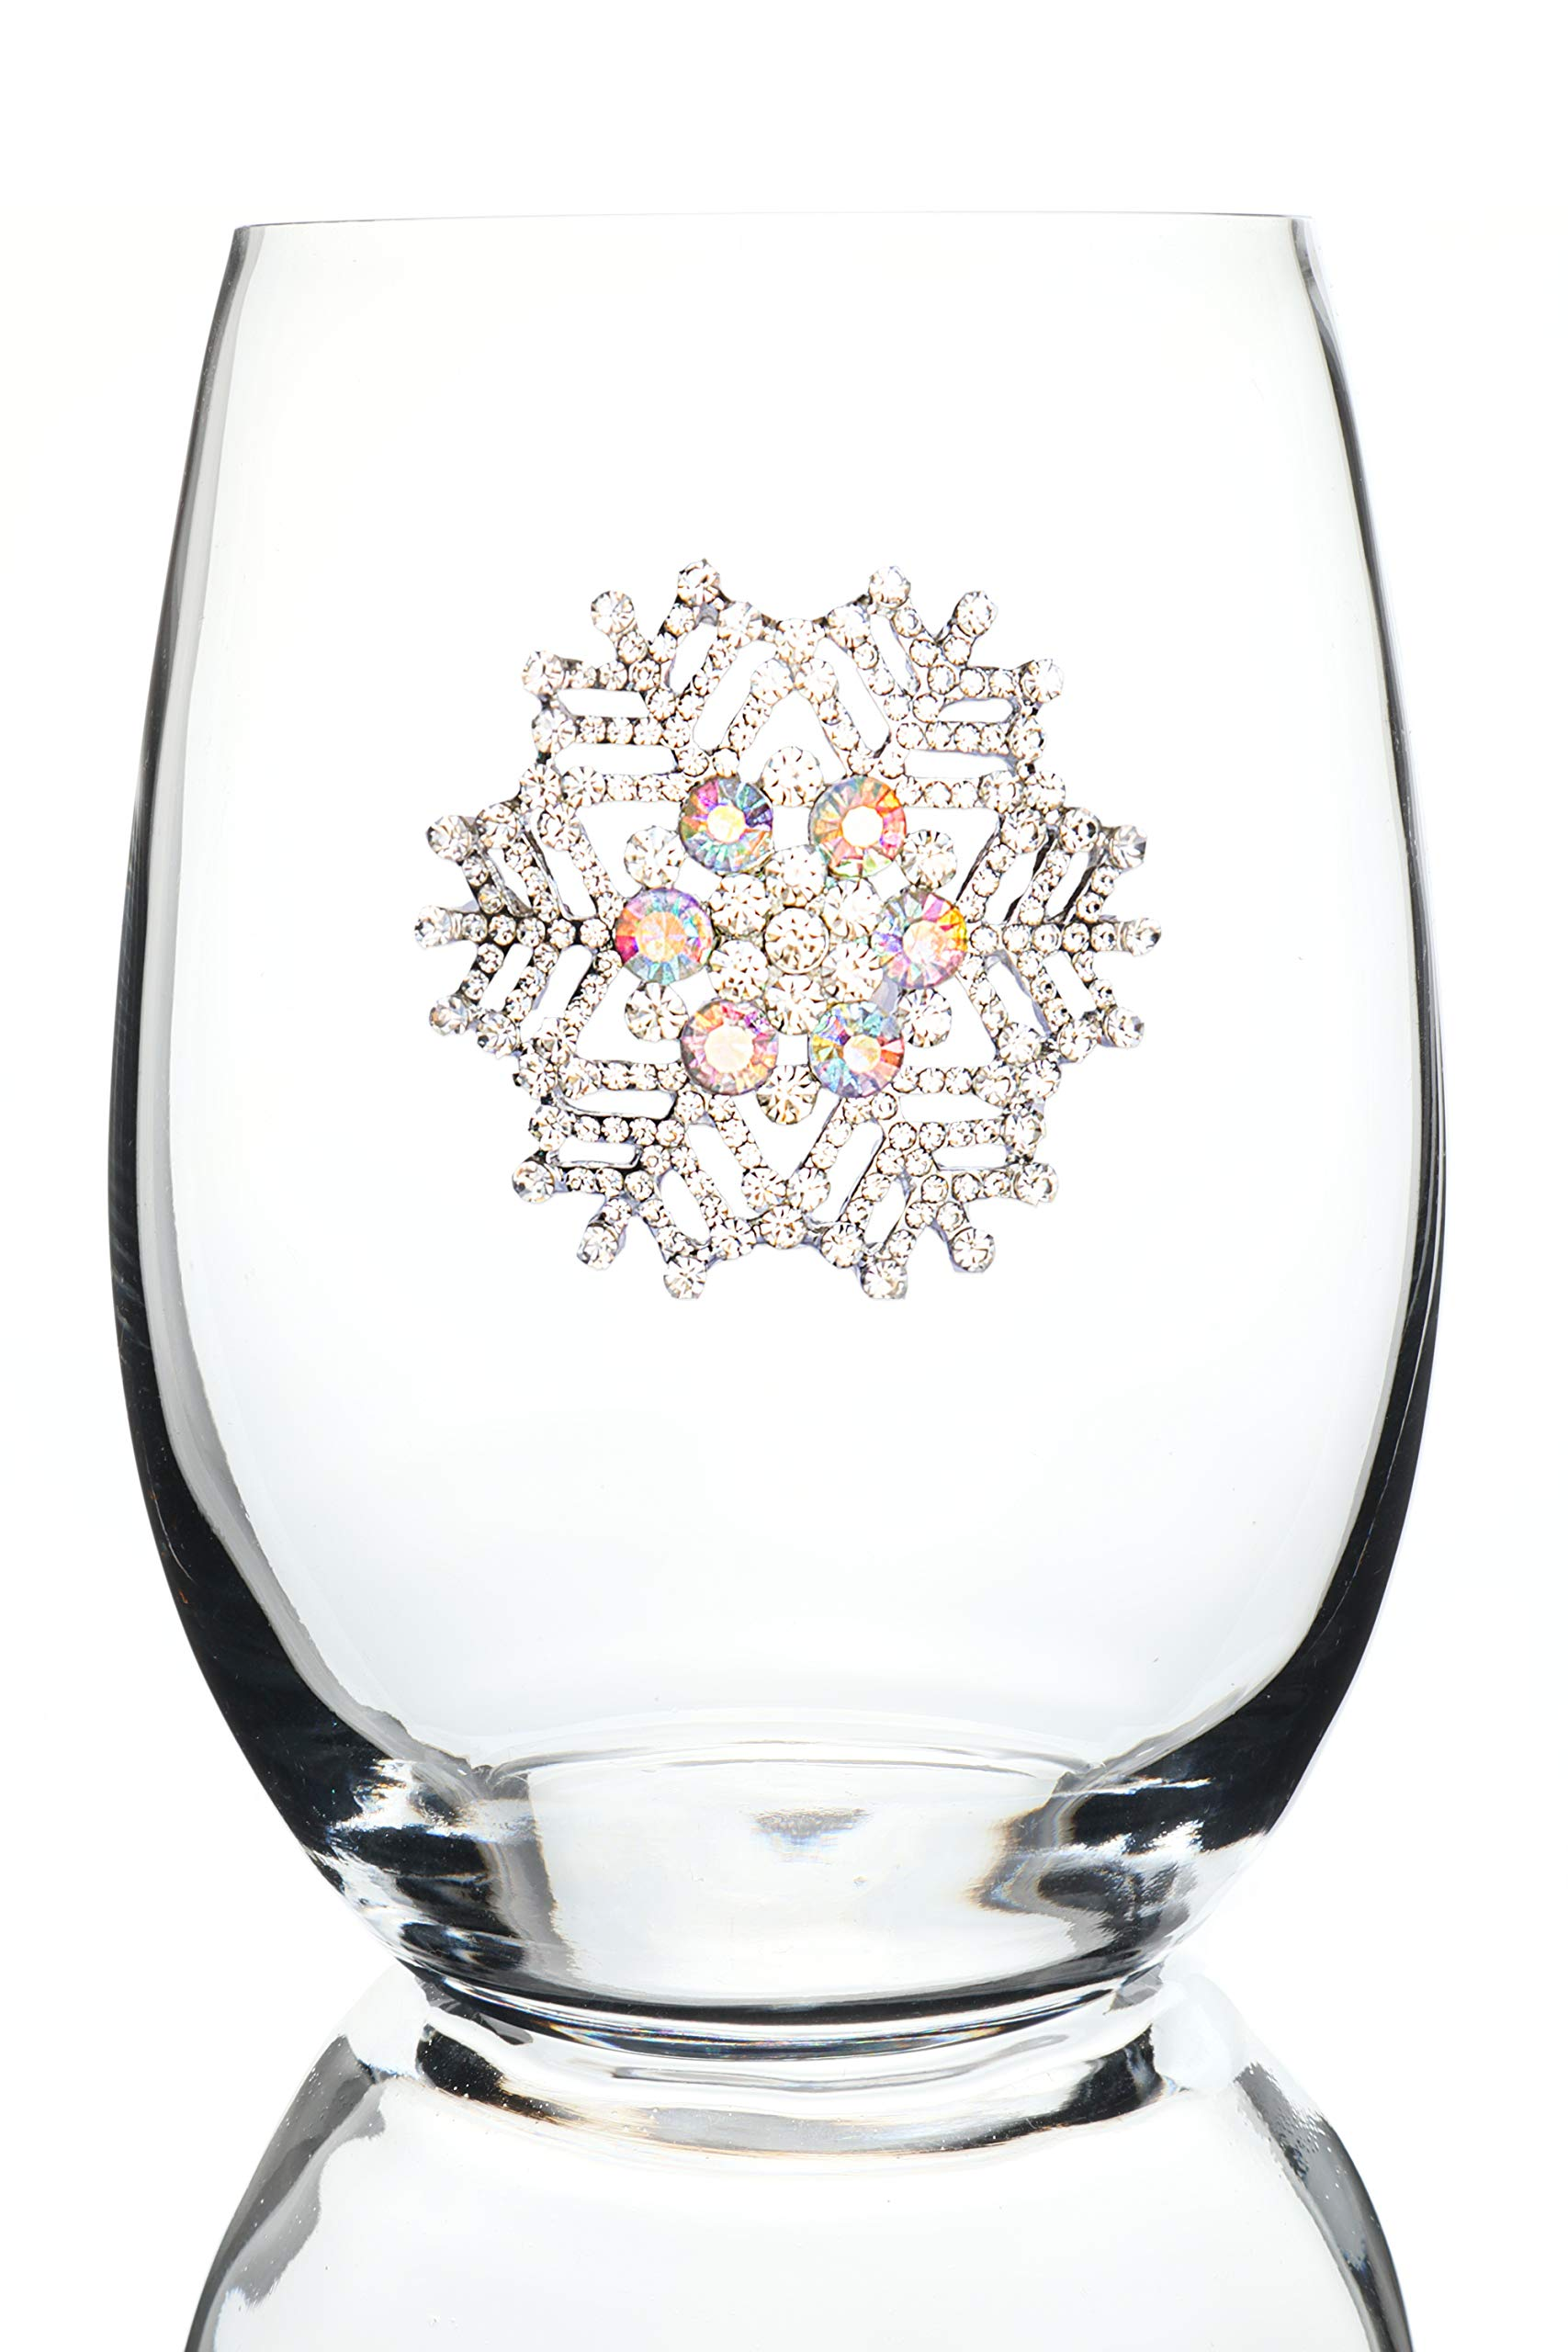 THE QUEENS' JEWELS Snowflake Jeweled Stemless Wine Glass - Unique Gift for Women, Birthday, Cute, Fun, Holiday, Not Painted, Decorated, Bling, Bedazzled, Rhinestone